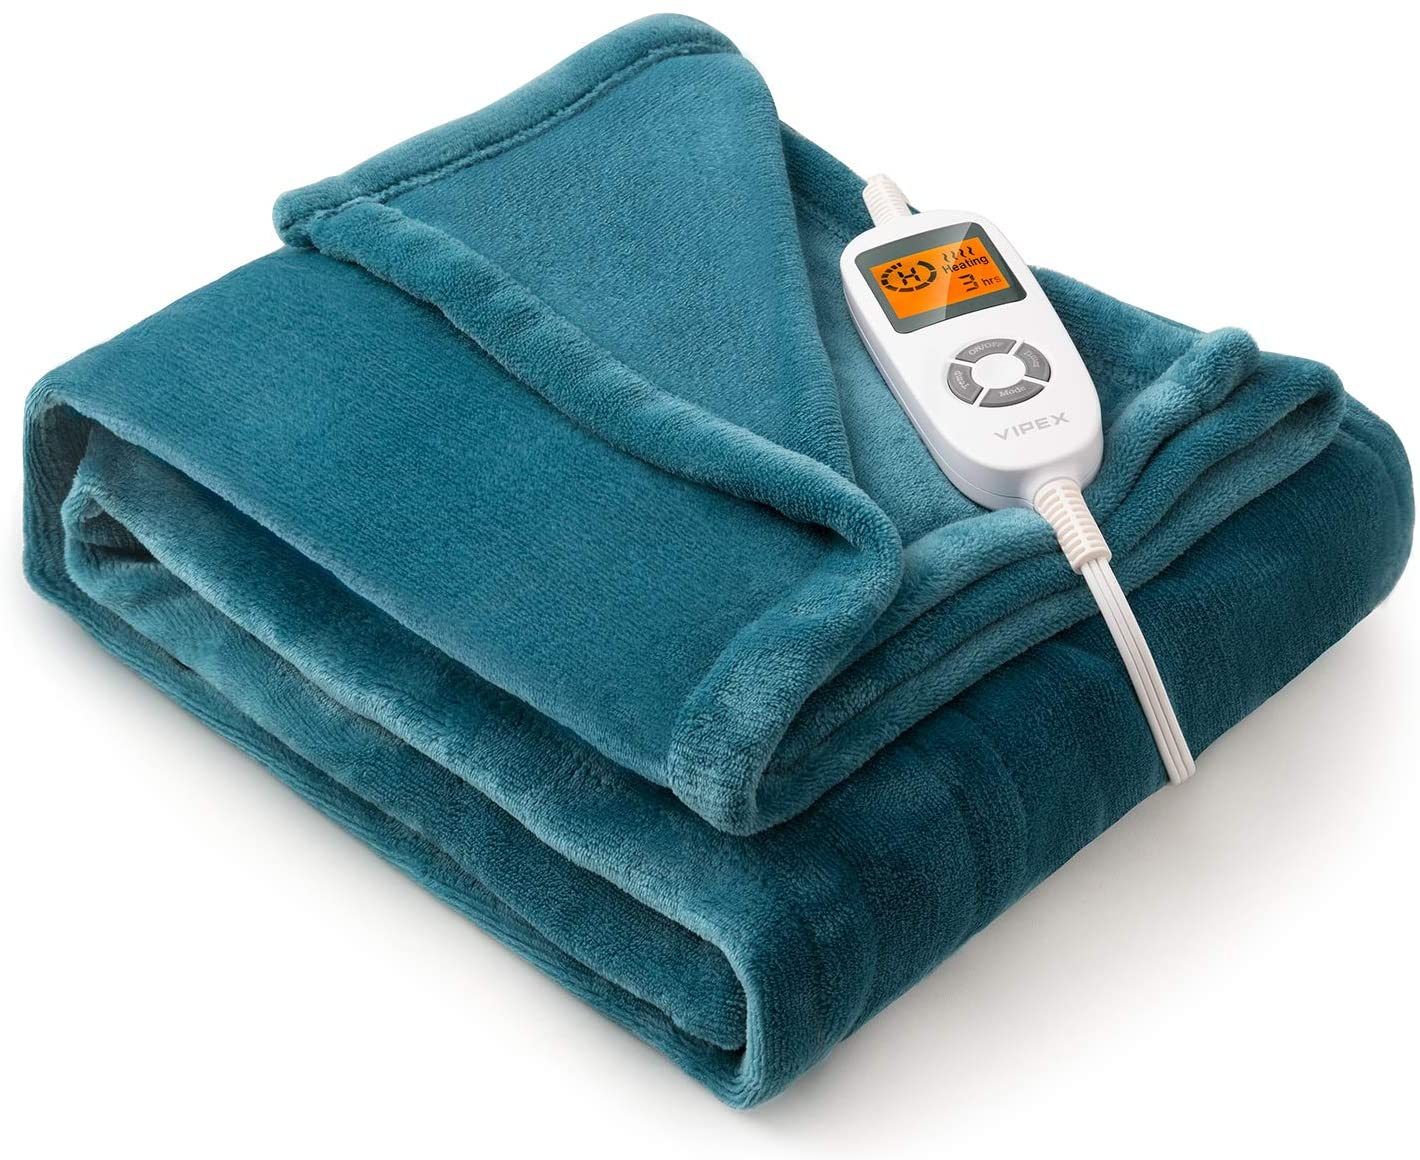 """VIPEX Heated Blanket Electric Throw, 50"""" x 60"""" Flannel Electric Blanket with 10 Heating Levels & 3 Timer Settings Auto-Off, Travel Home..."""